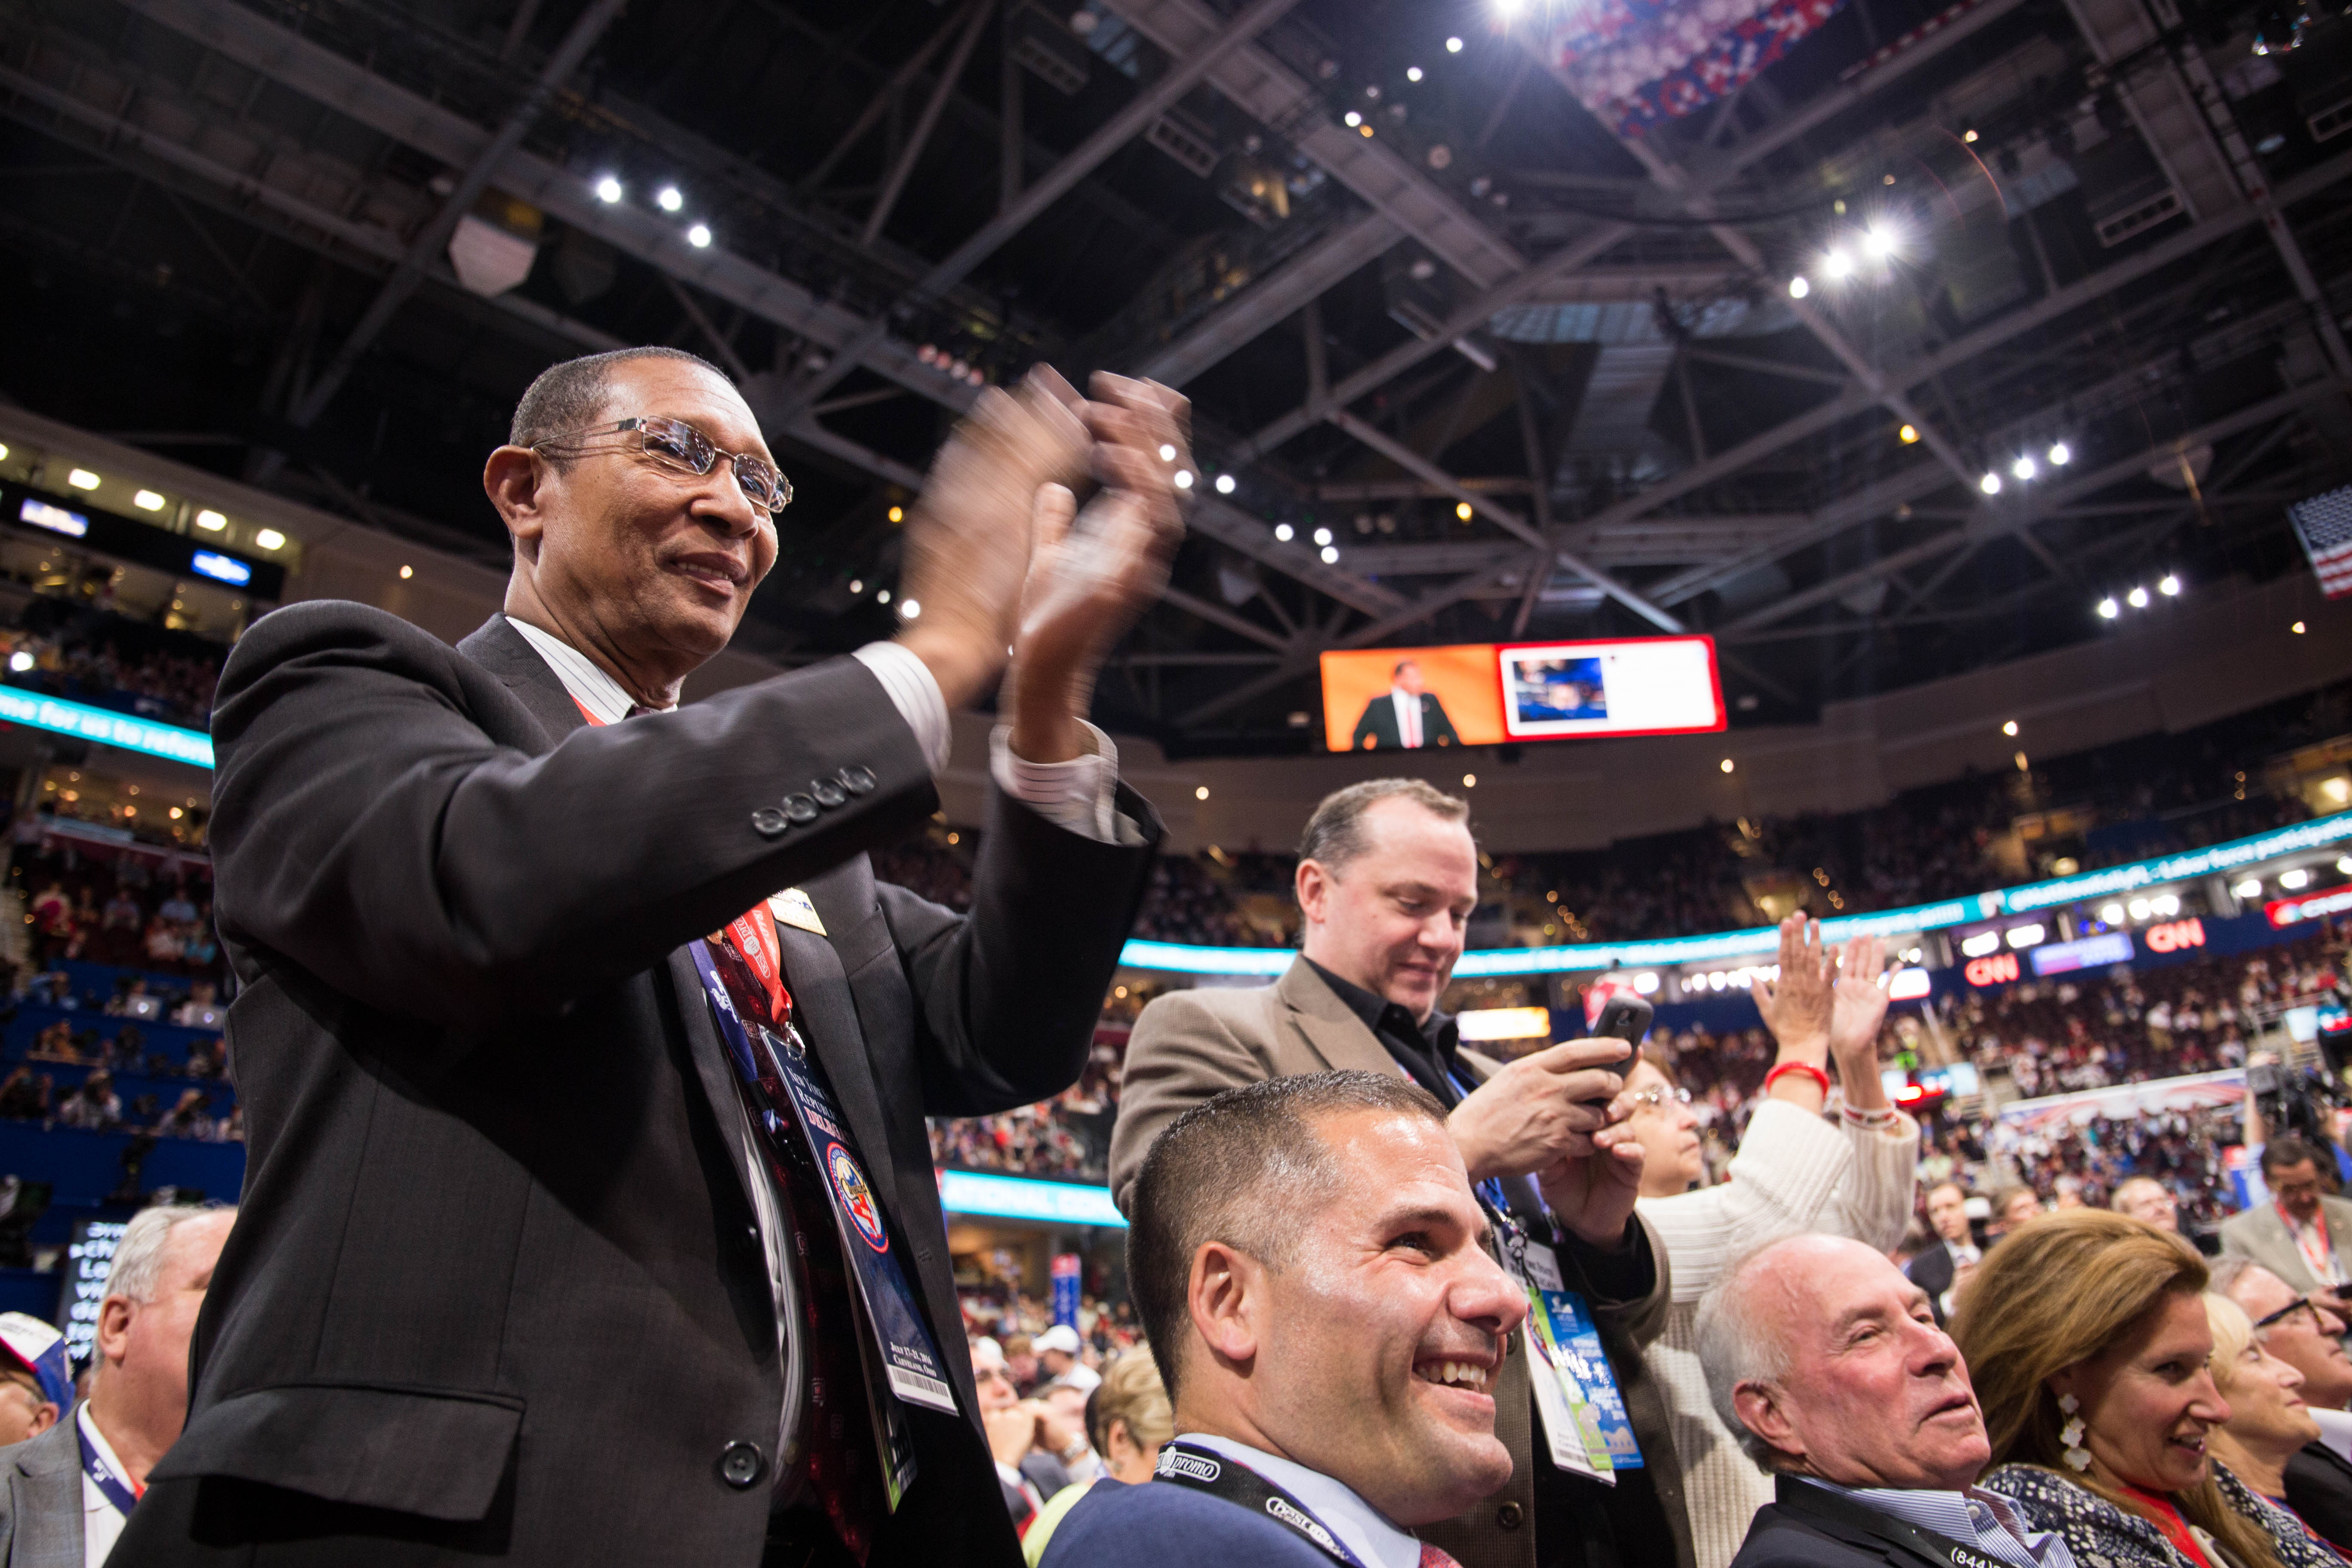 Cheers To Governor Christie >> Republican National Convention: Day Two | Boston University News Service